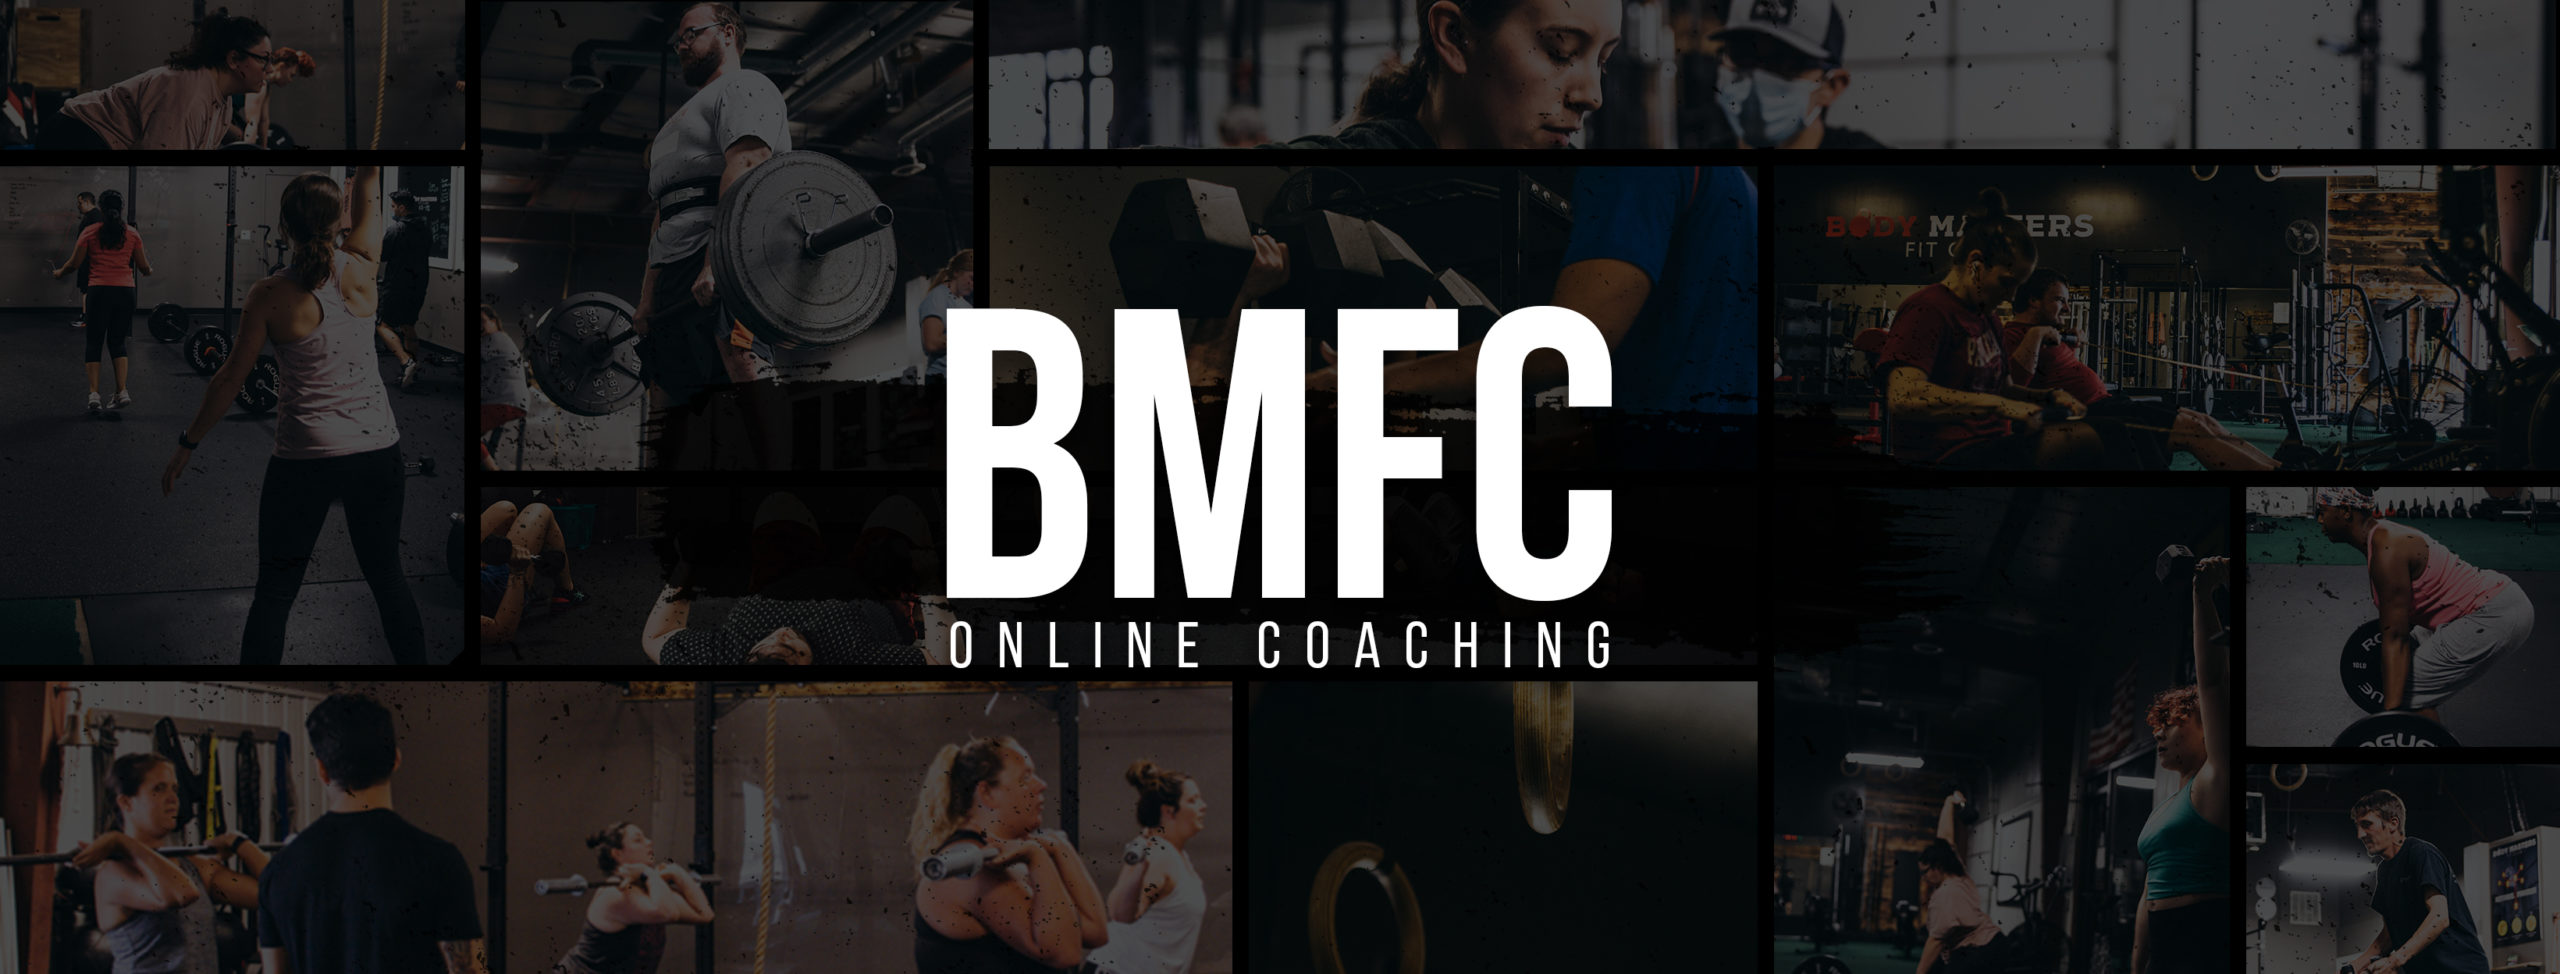 Google rich results for BMFC Online